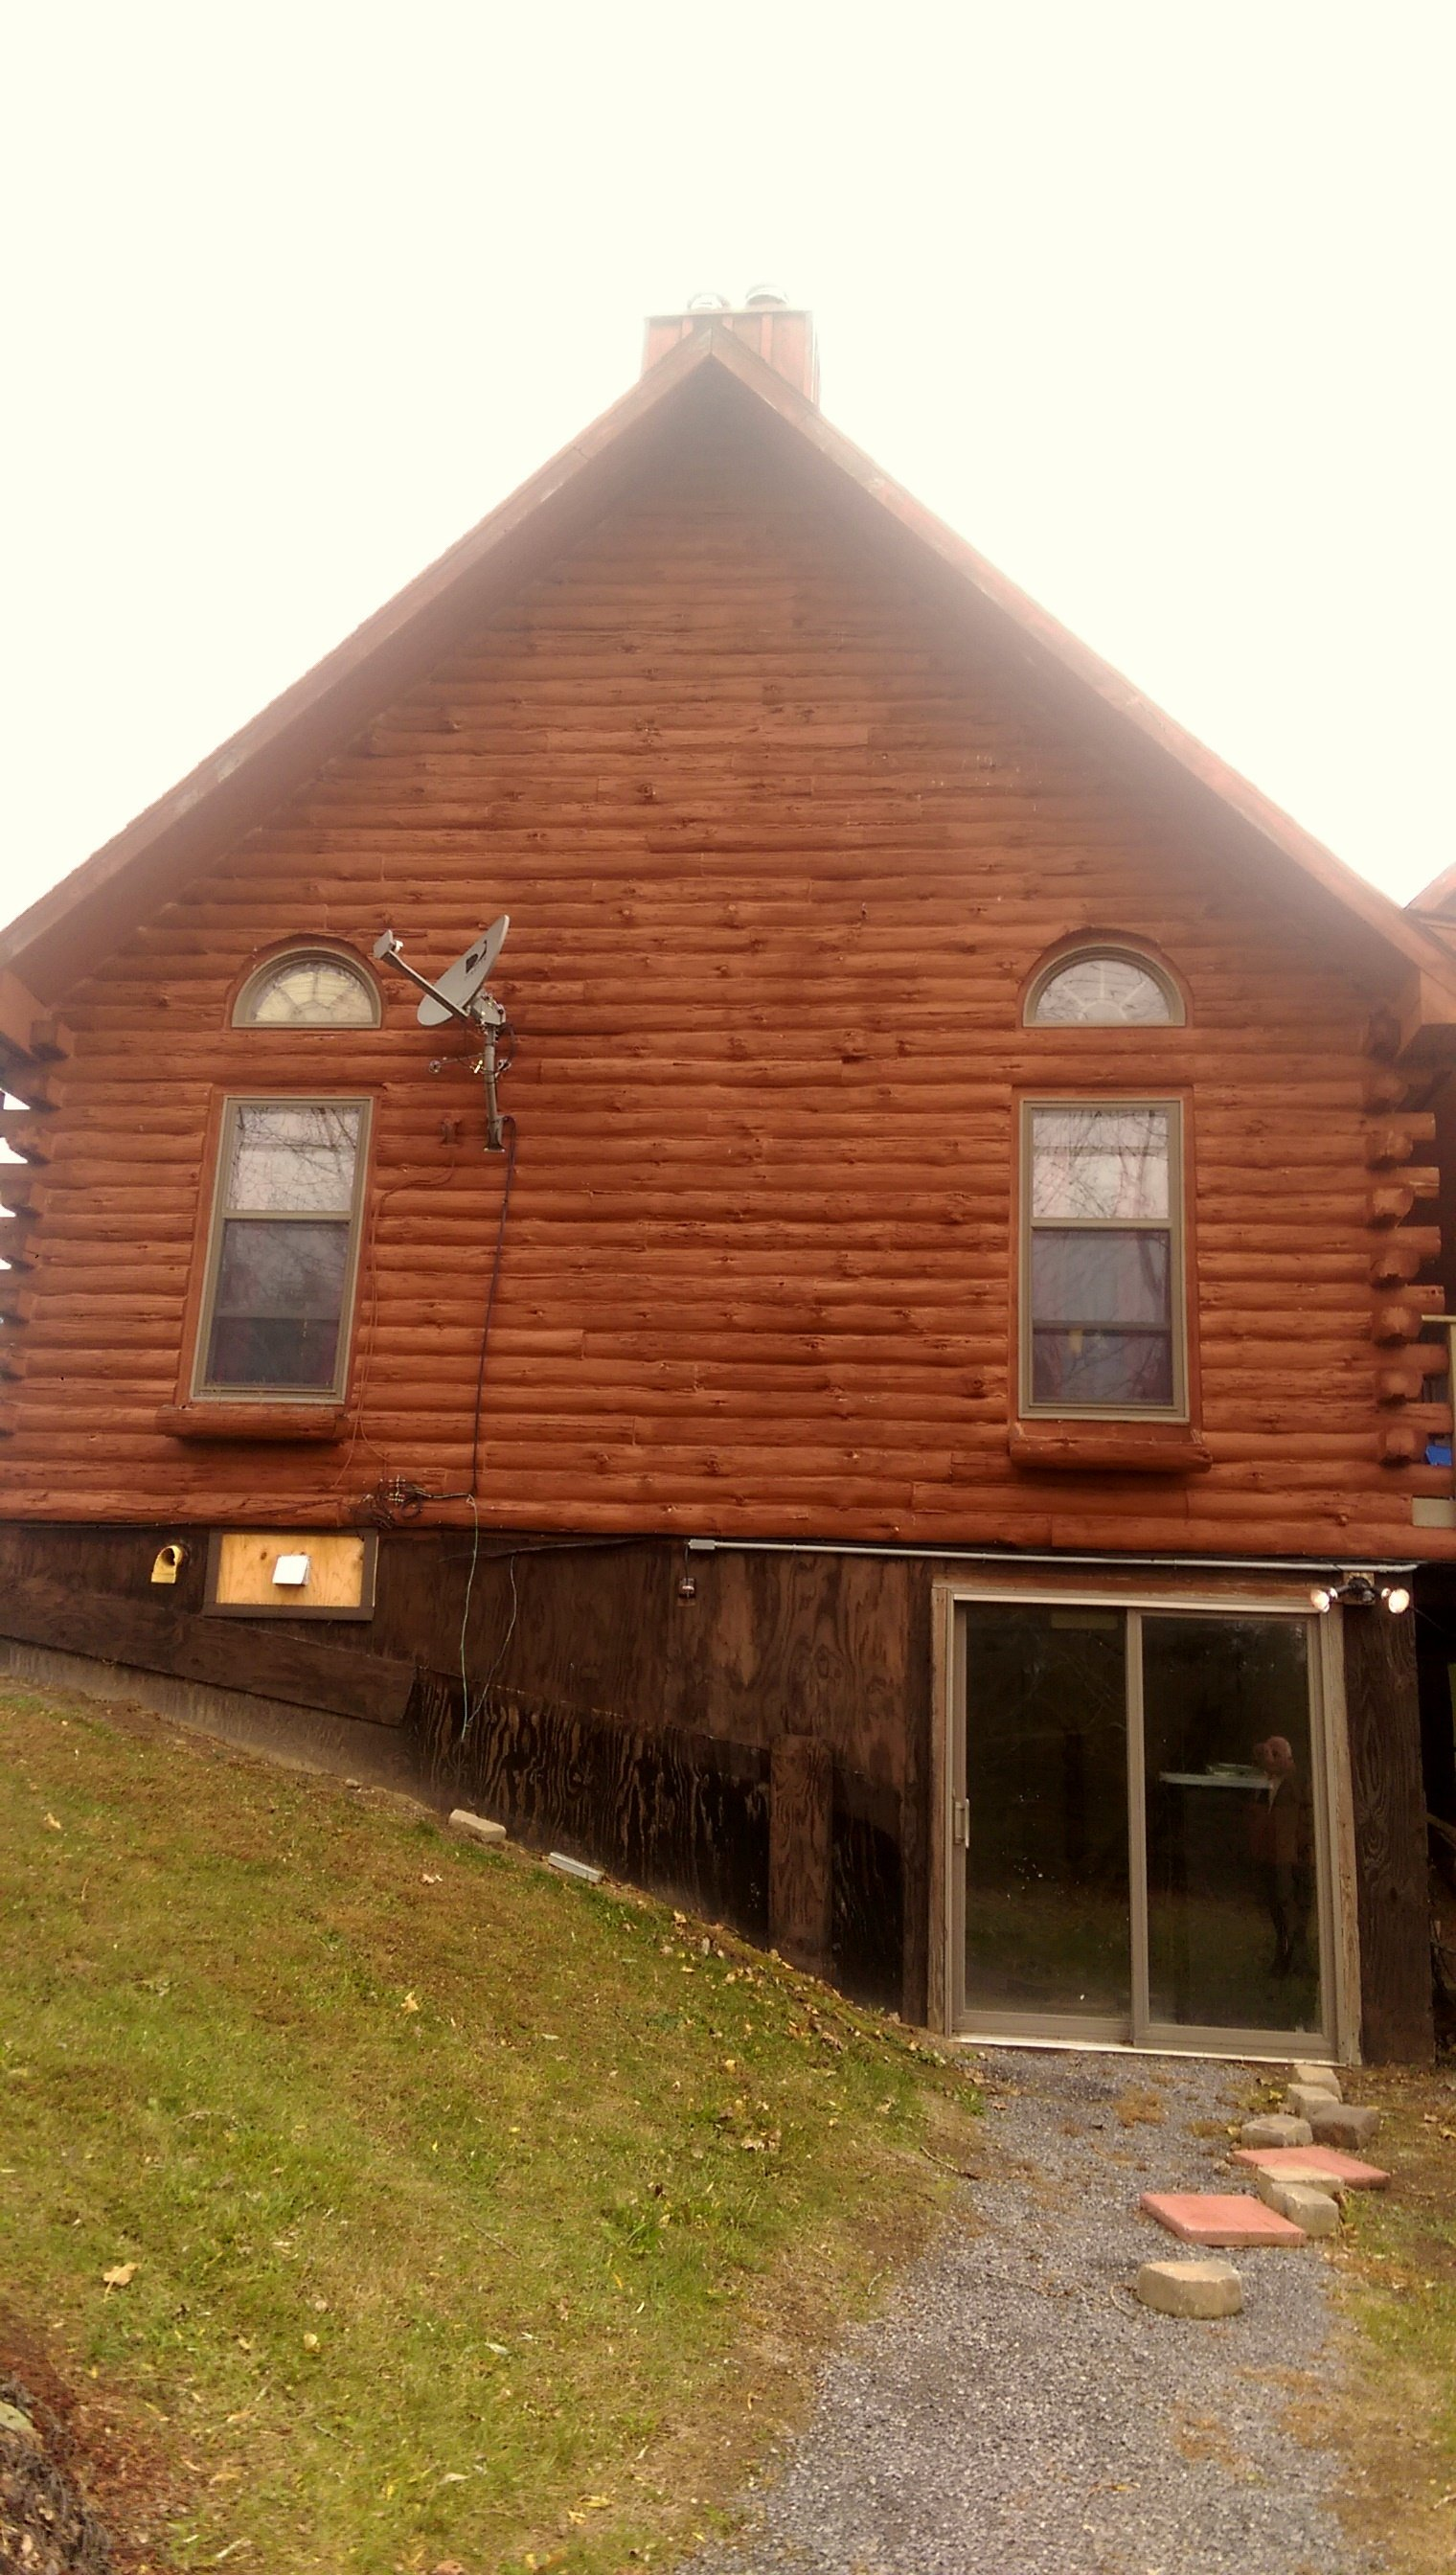 Log cabin with chinking home restoration knoxville tn for Log cabin restoration